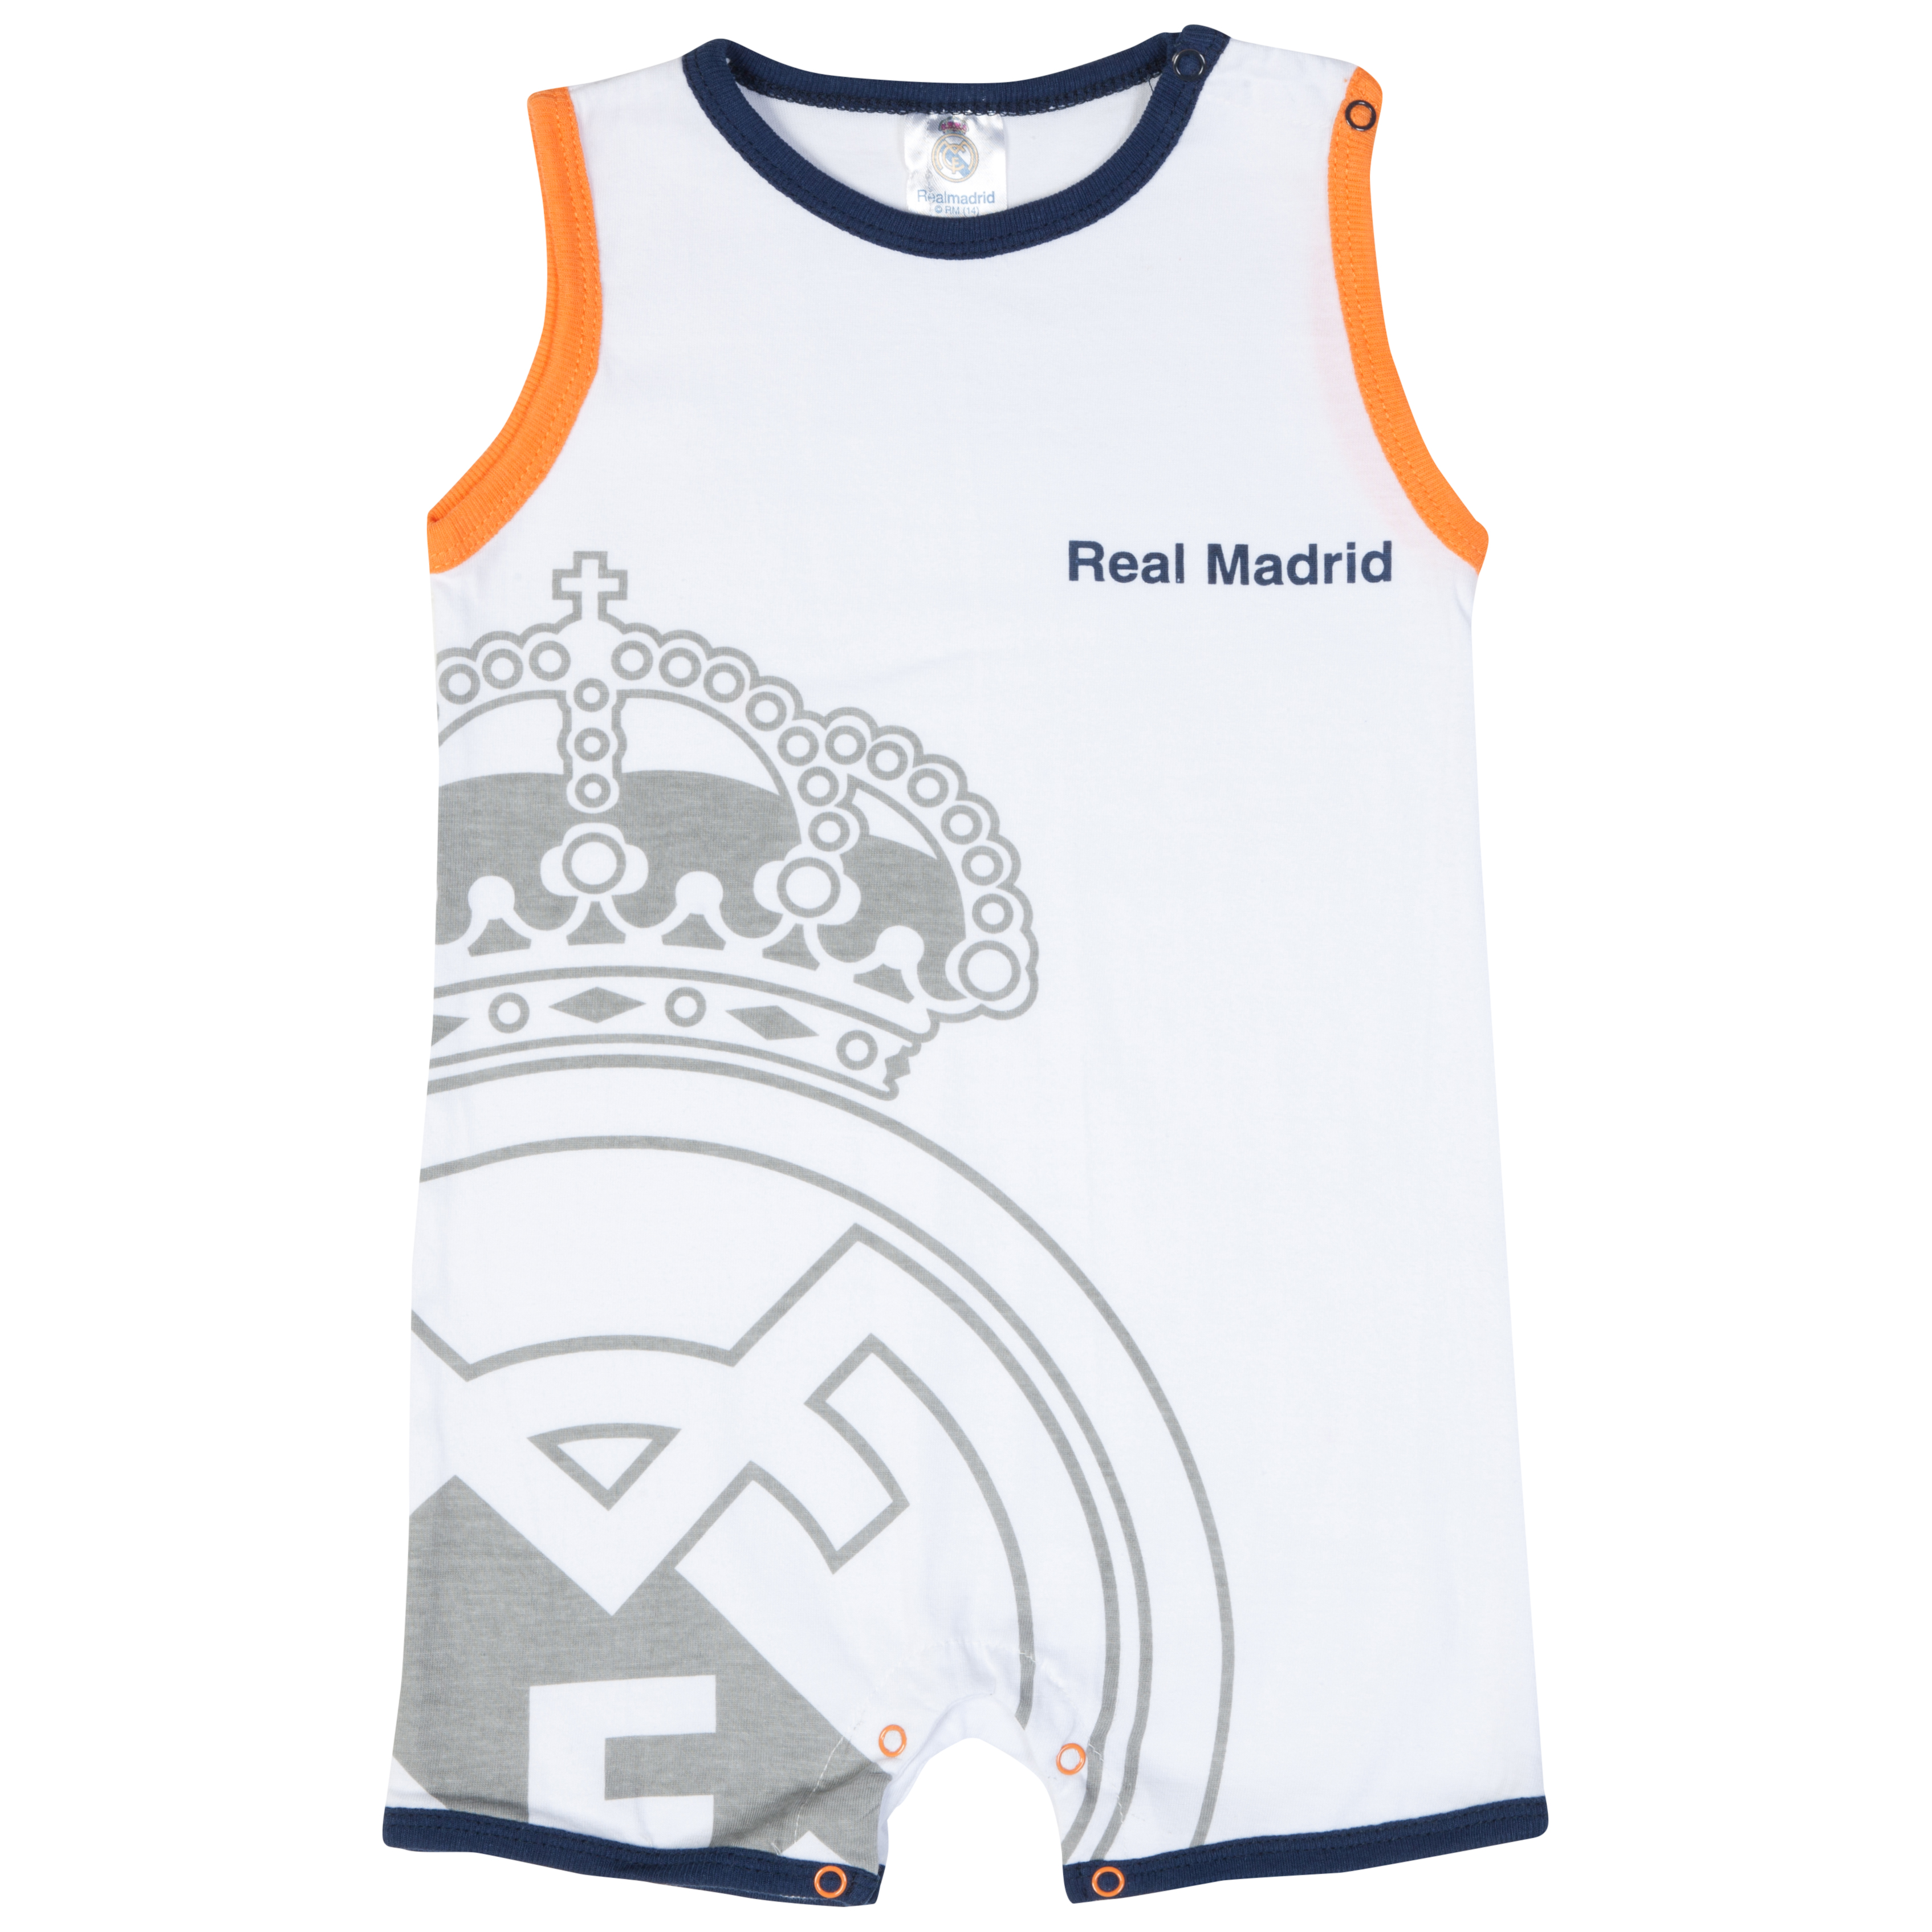 Real Madrid Crest Bodysuit - White - Baby Unisex